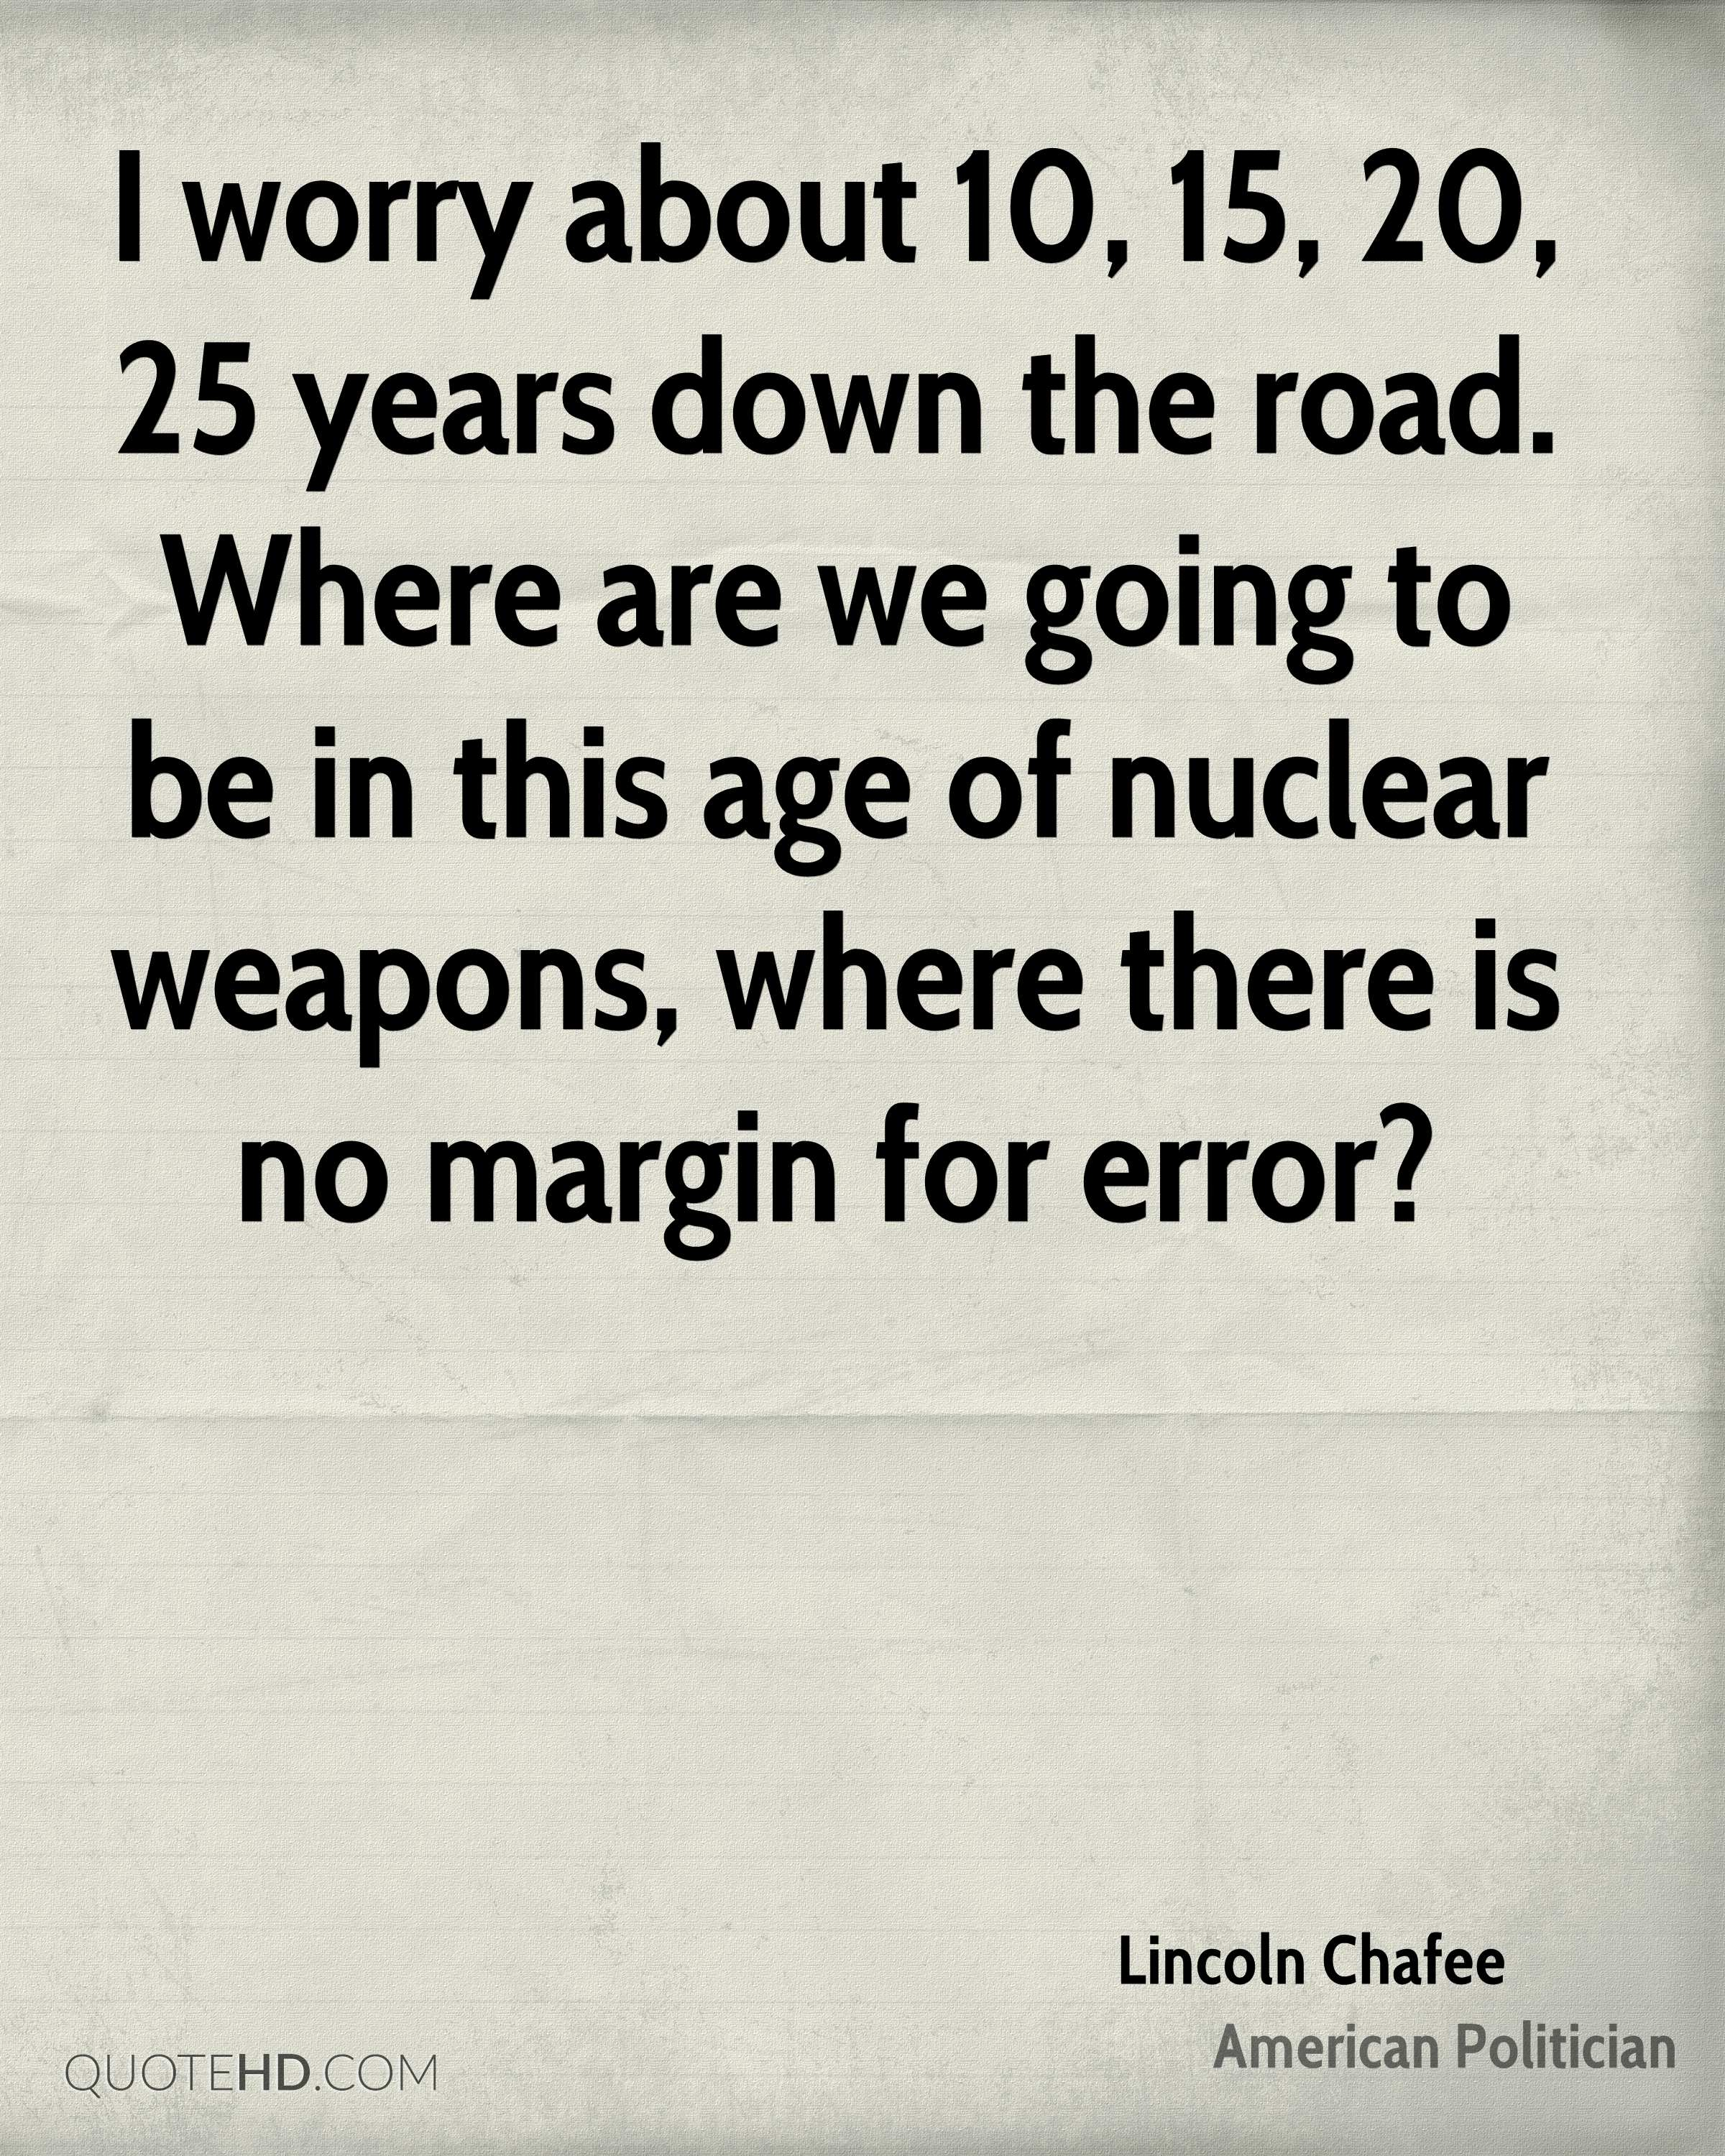 I worry about 10, 15, 20, 25 years down the road. Where are we going to be in this age of nuclear weapons, where there is no margin for error?